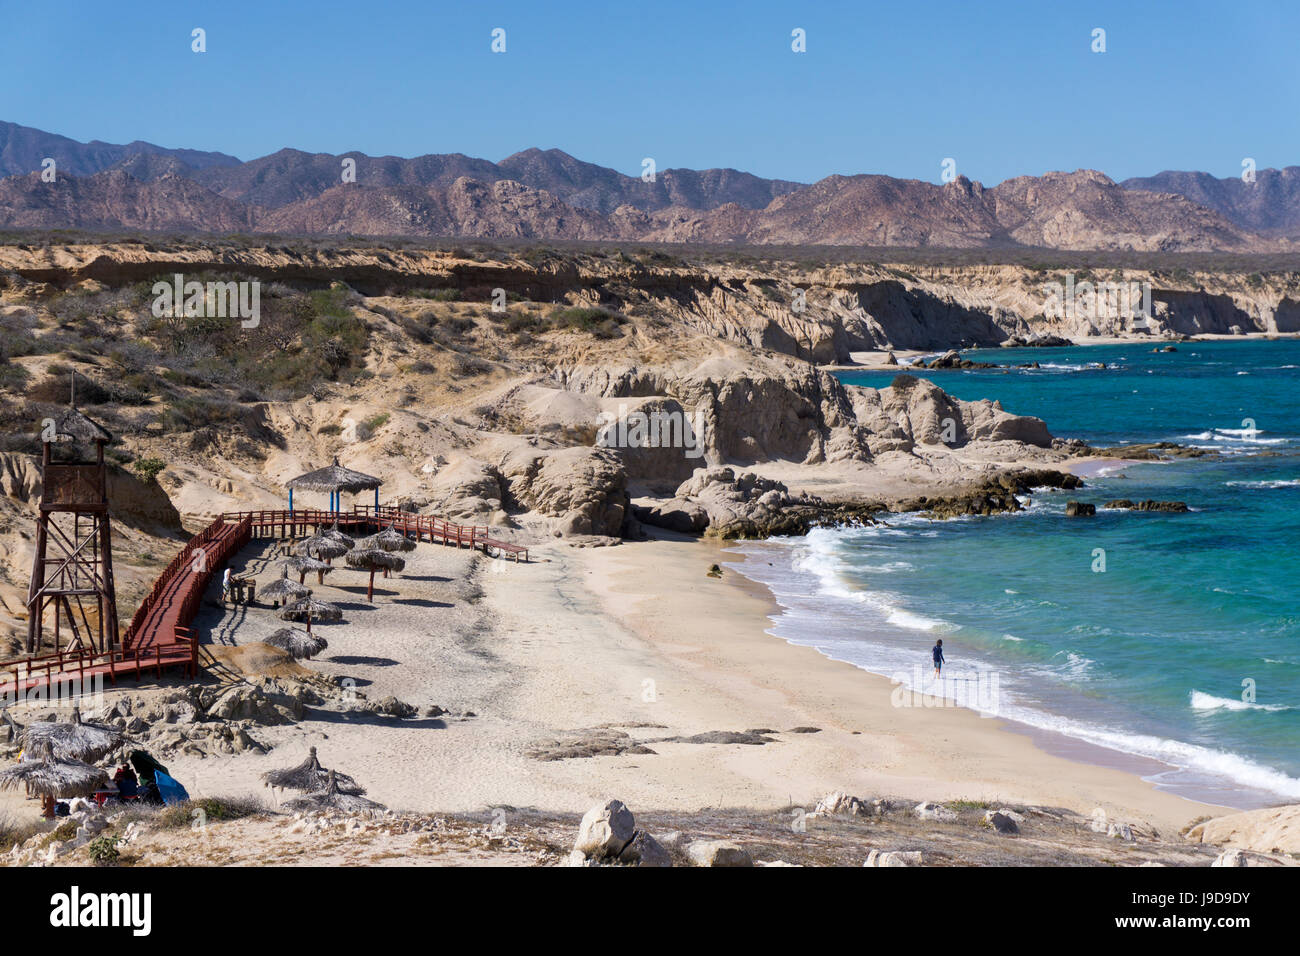 Beach and whale watch tower, Cabo Pulmo, UNESCO World Heritage Site, Baja California, Mexico, North America - Stock Image